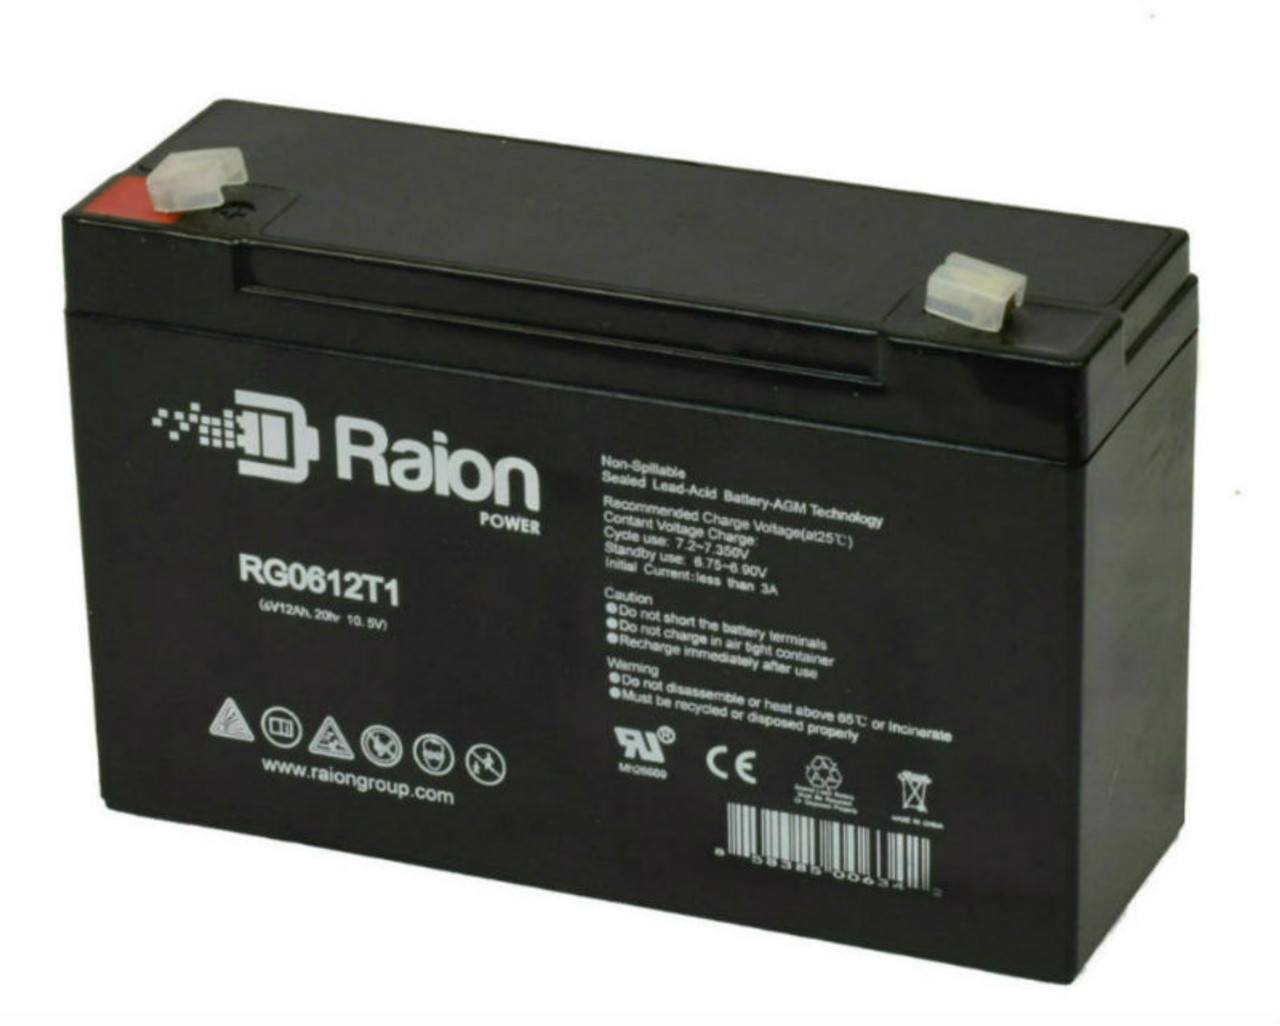 Raion Power RG06120T1 Replacement Battery Pack for Teledyne Big Beam 2SC6G8P2 emergency light